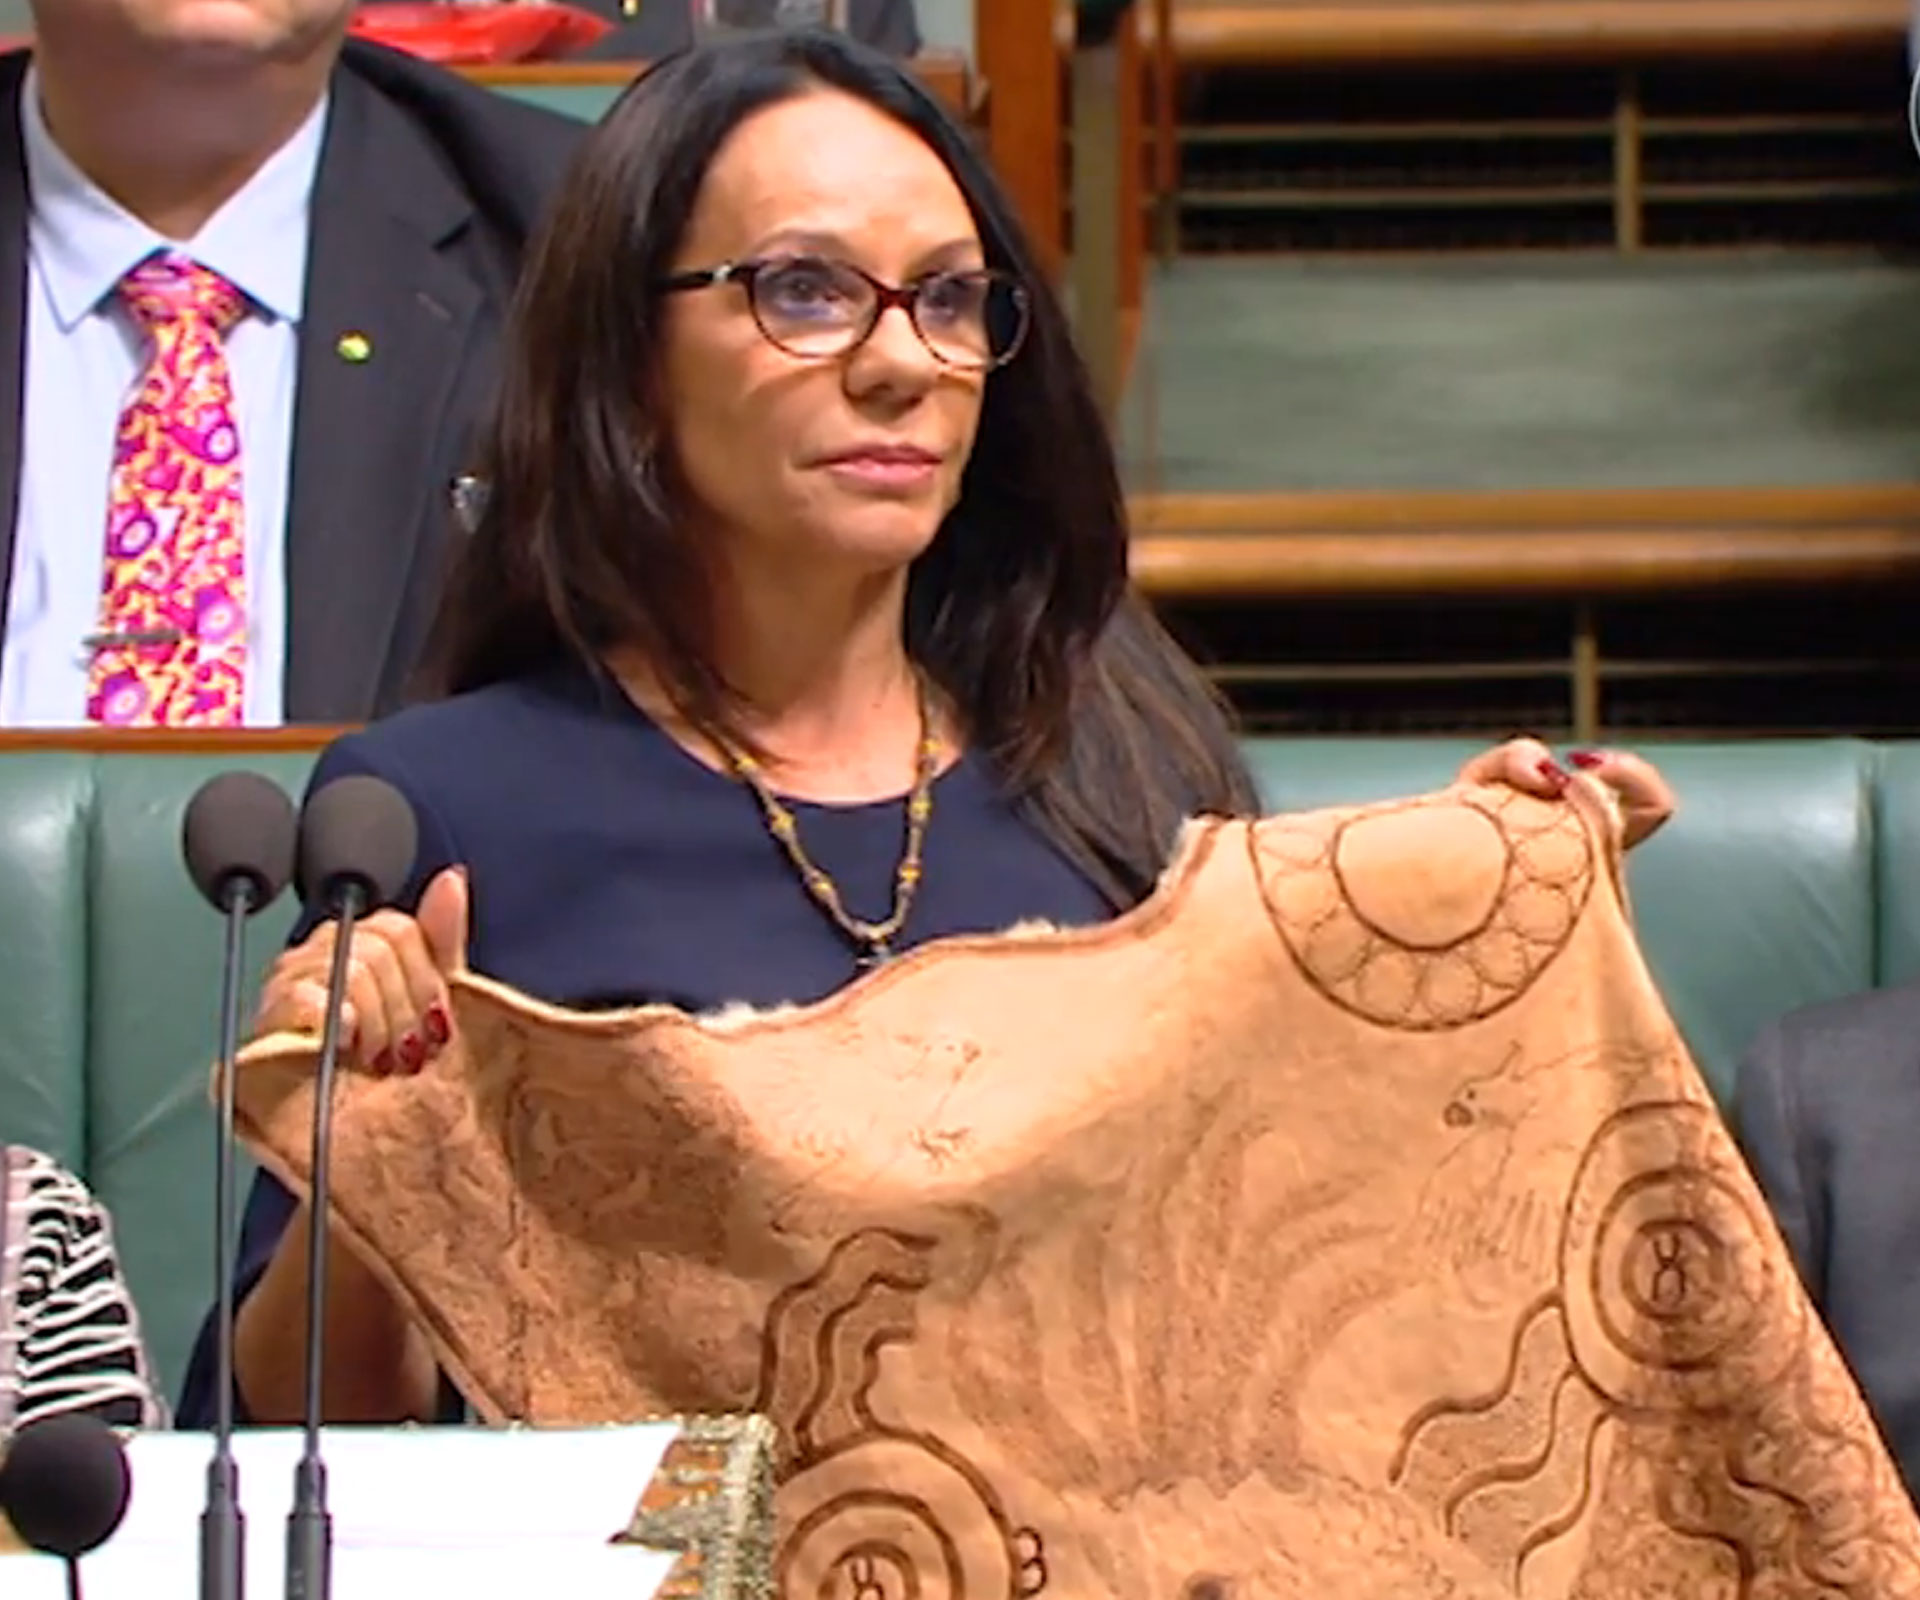 Linda Burney gives empowering maiden speech in Parliament